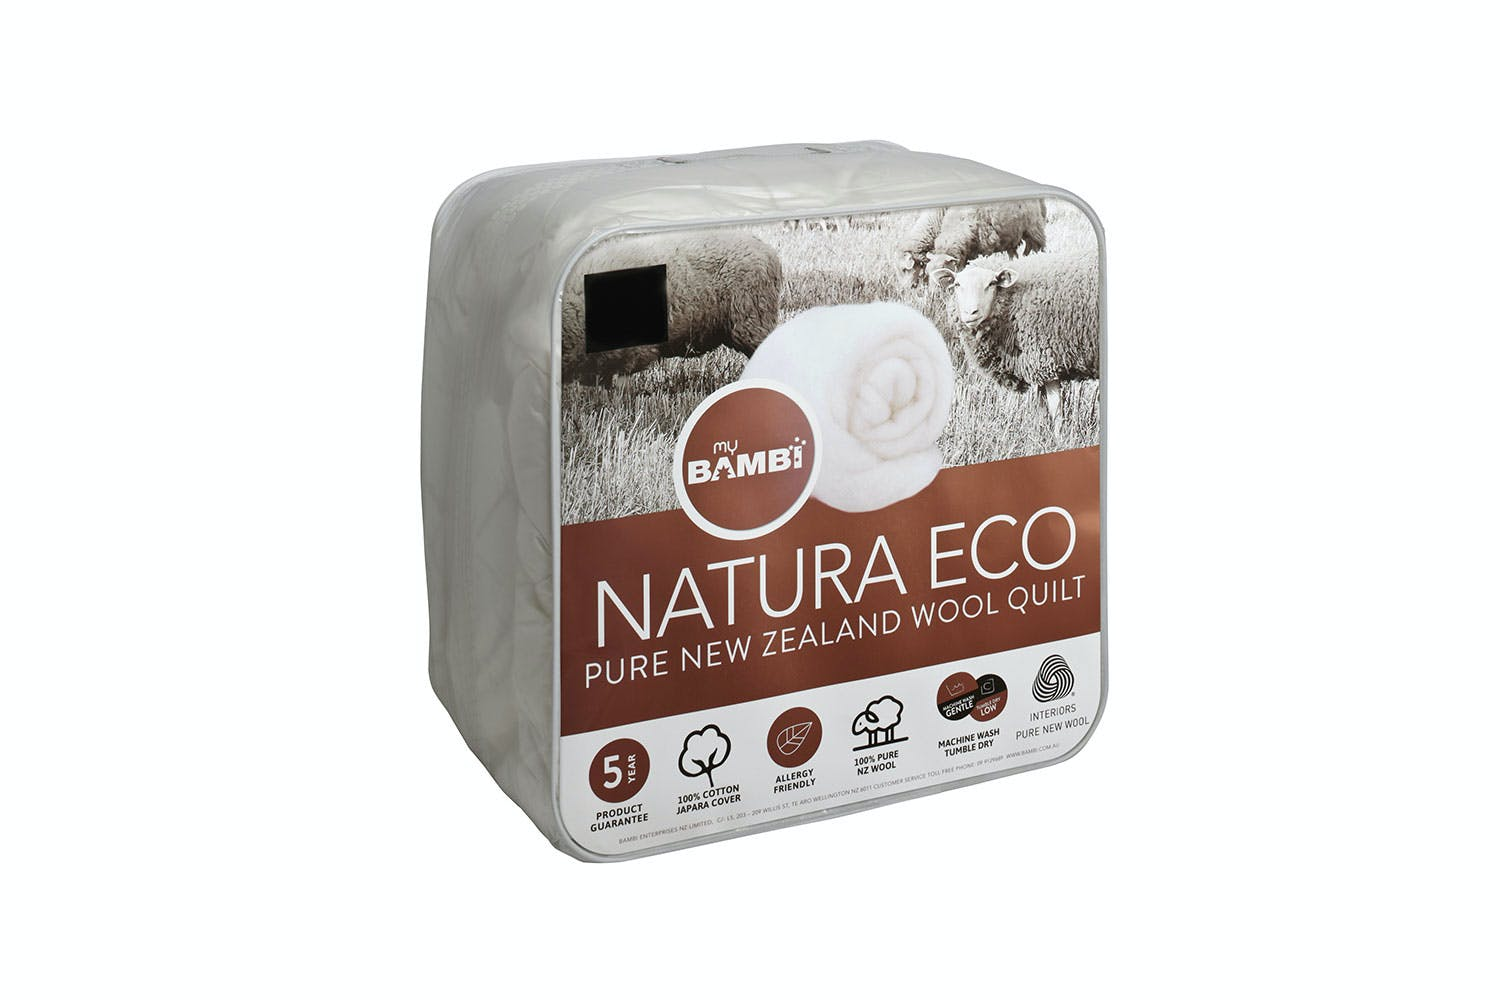 Image of Natura Eco NZ Wool 500gsm Duvet Inner by Bambi